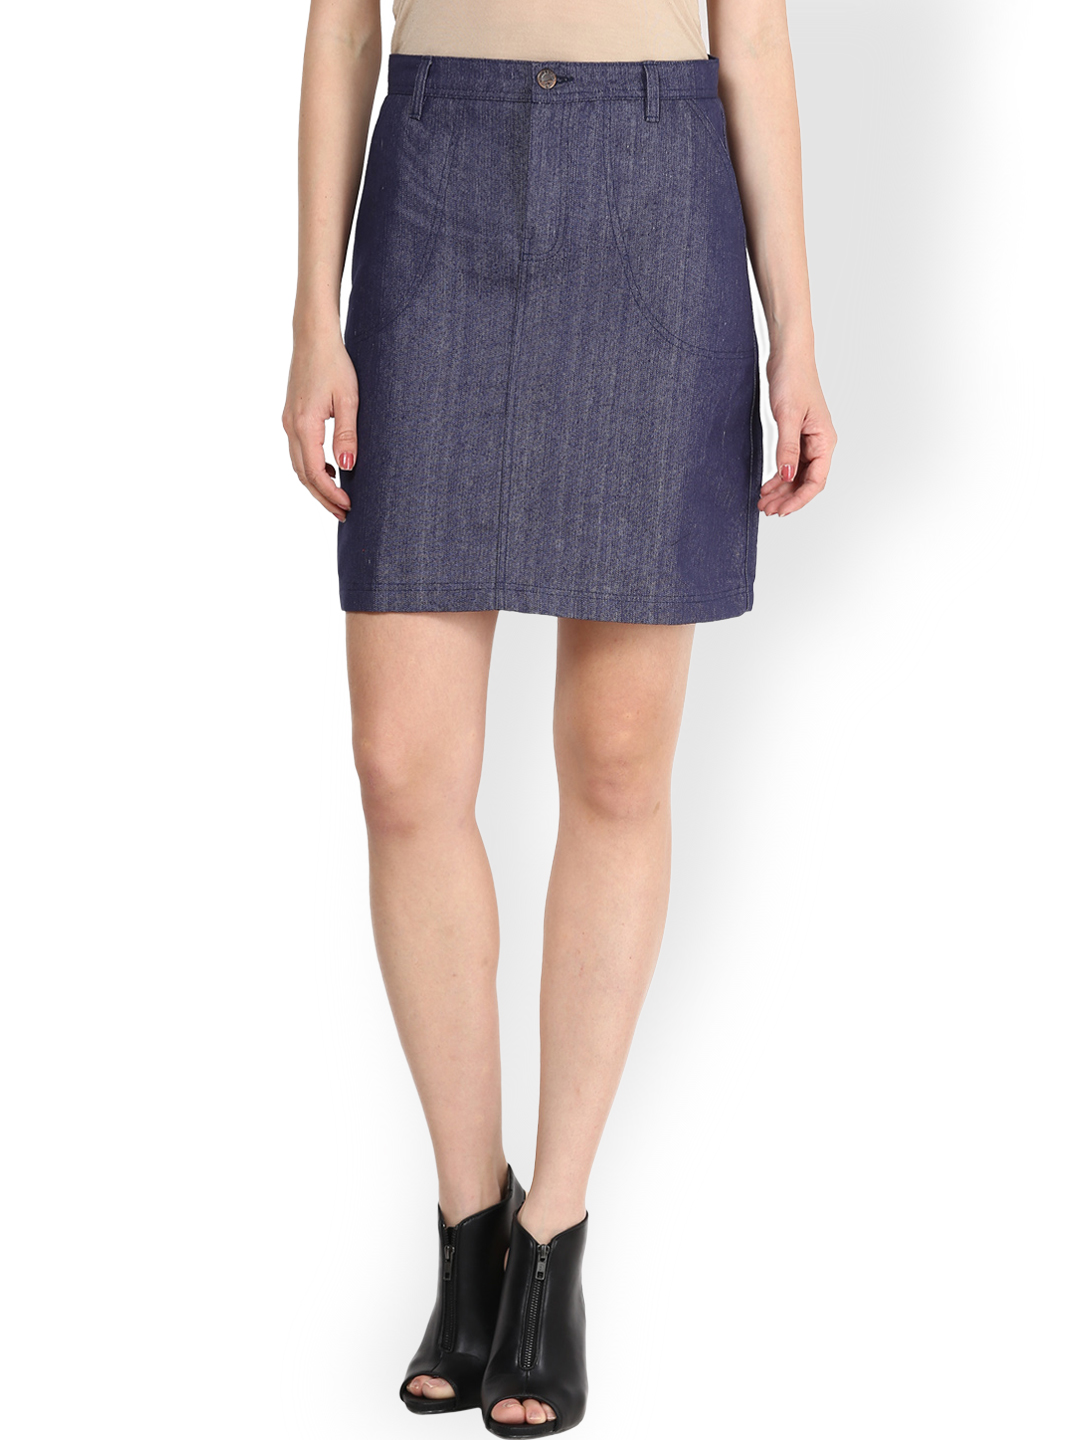 Athena Blue Slim Fit Denim Pencil Skirt Price in India